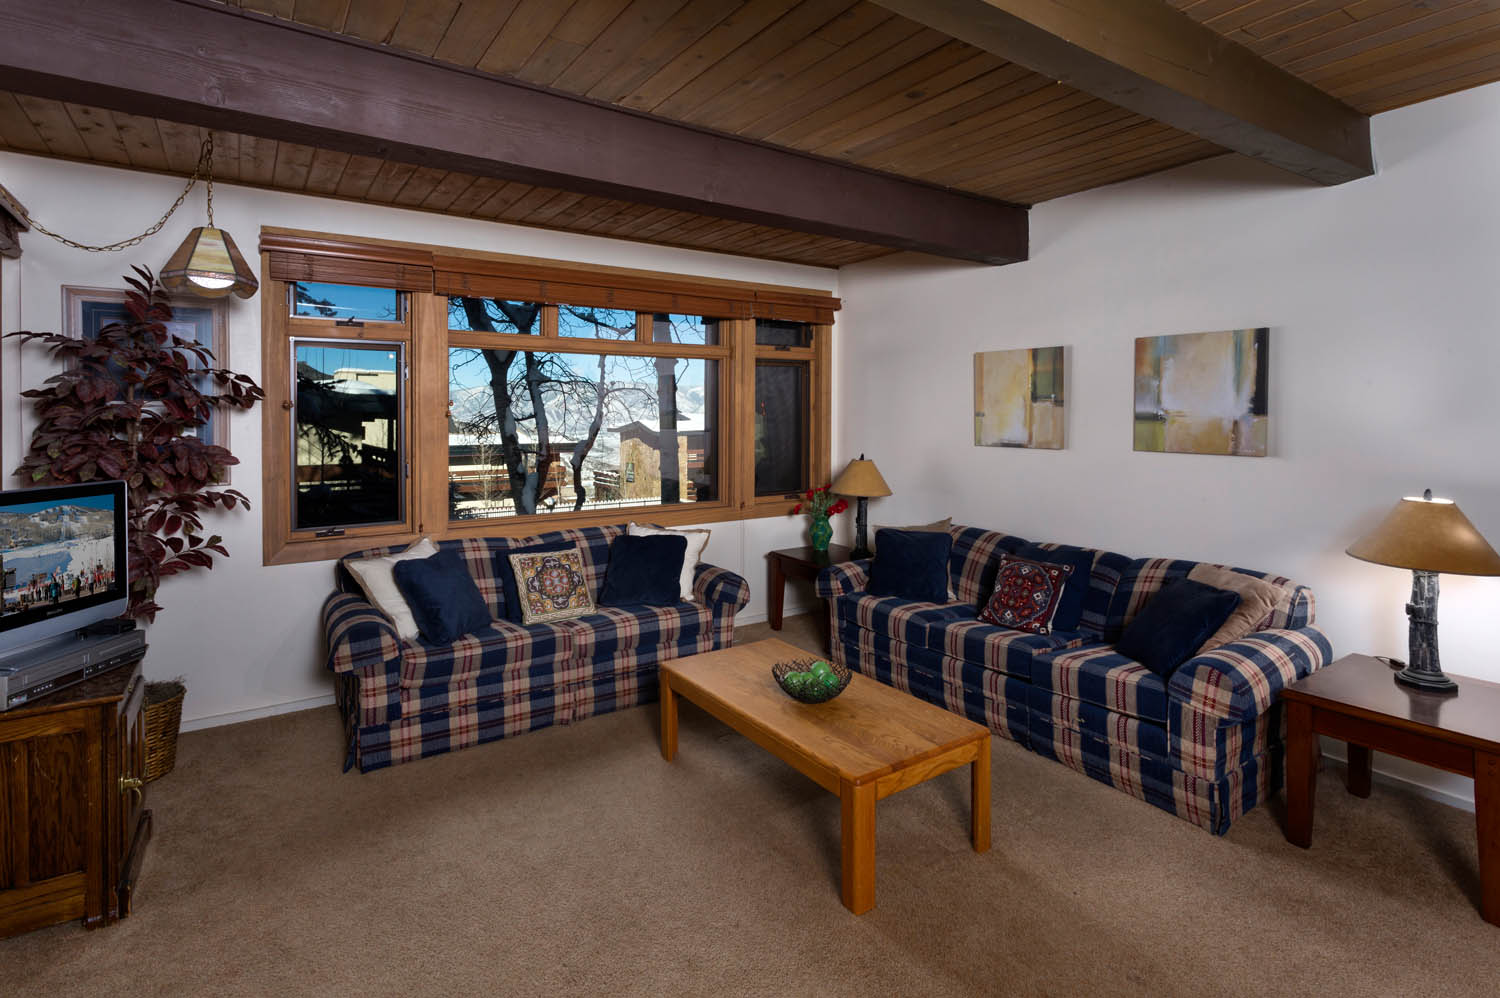 Single Family Home for Sale at Aspenwood Studio 600 Carriage Way K7 Snowmass Village, Colorado 81615 United States